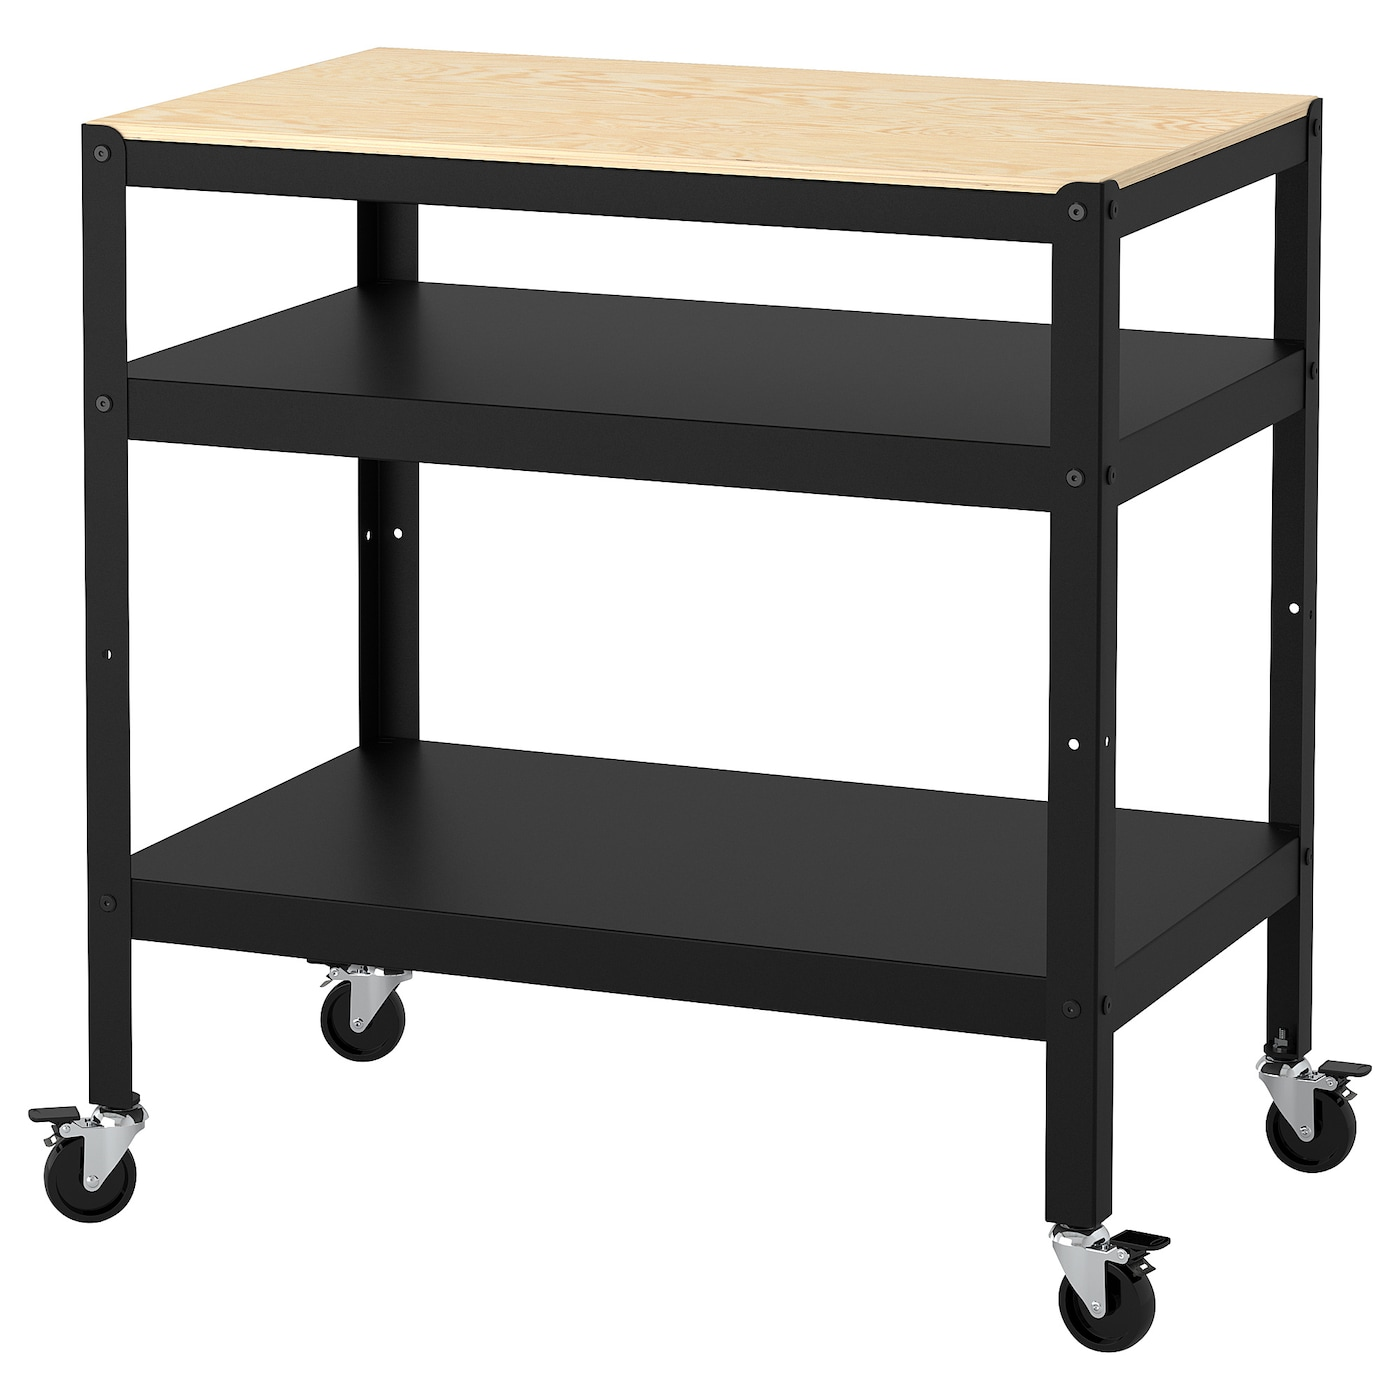 https://www.ikea.com/nl/nl/images/products/bror-trolley__0636685_PE697973_S5.JPG